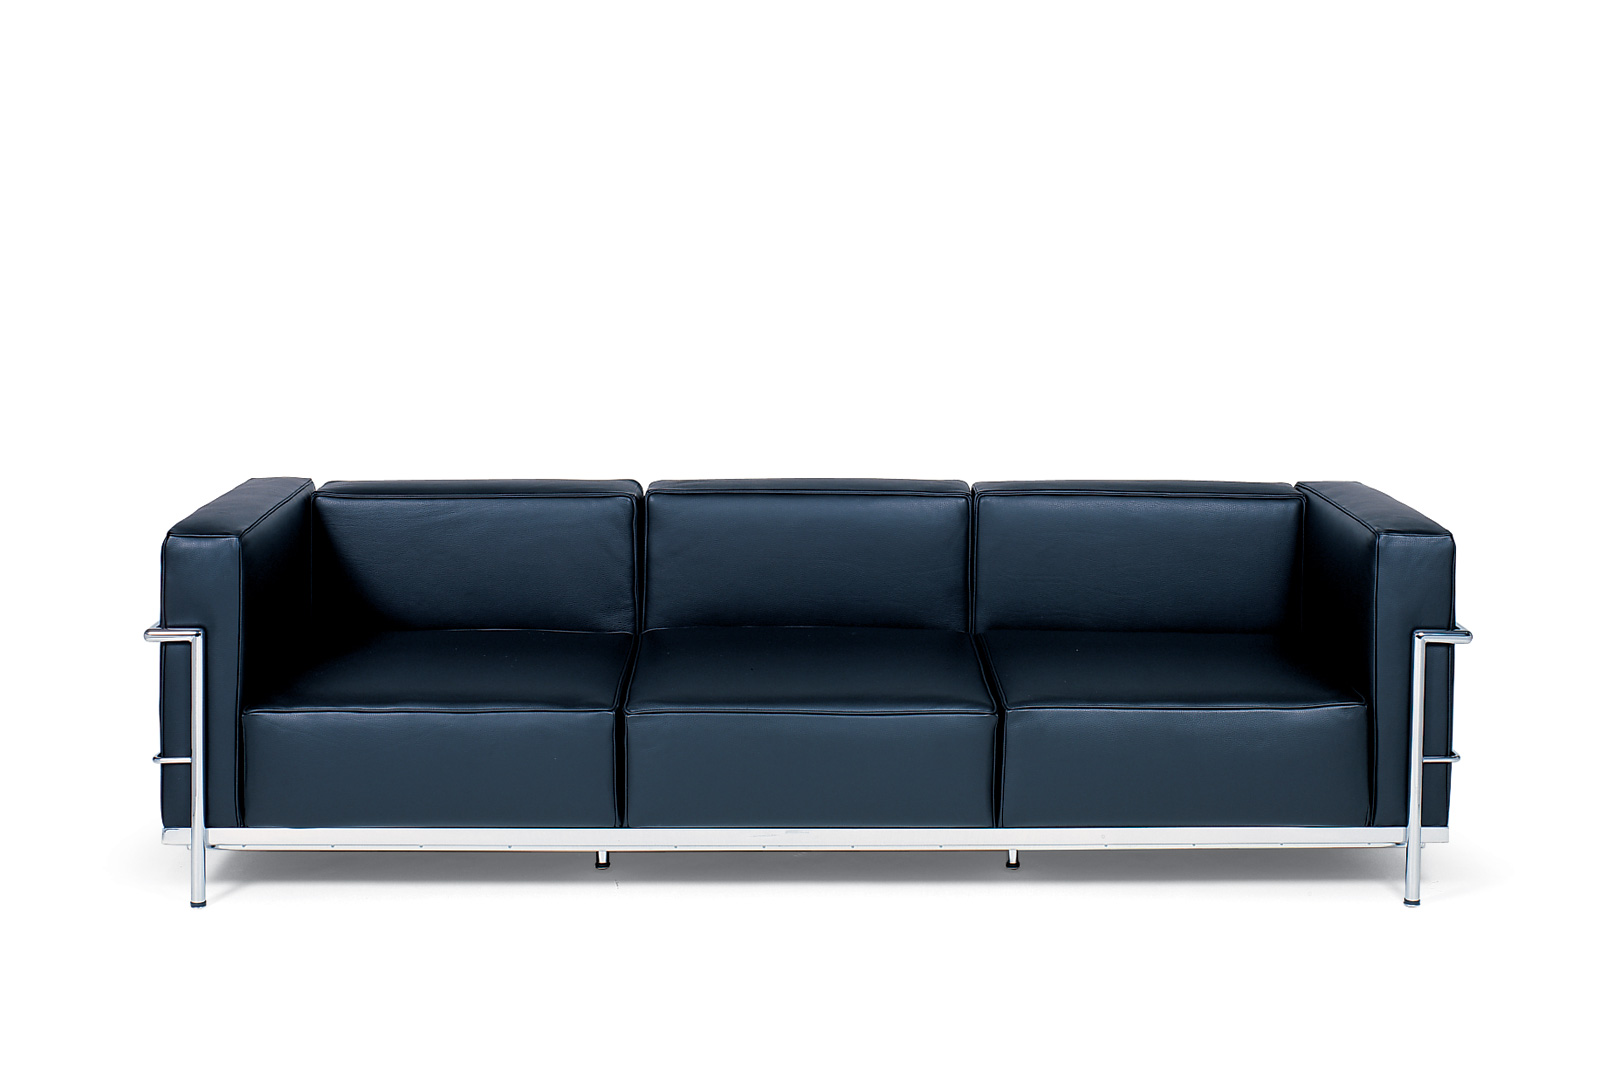 Shop Le Corbusier Grande Confort 82 Sofa Lc3b3 For Only 1575